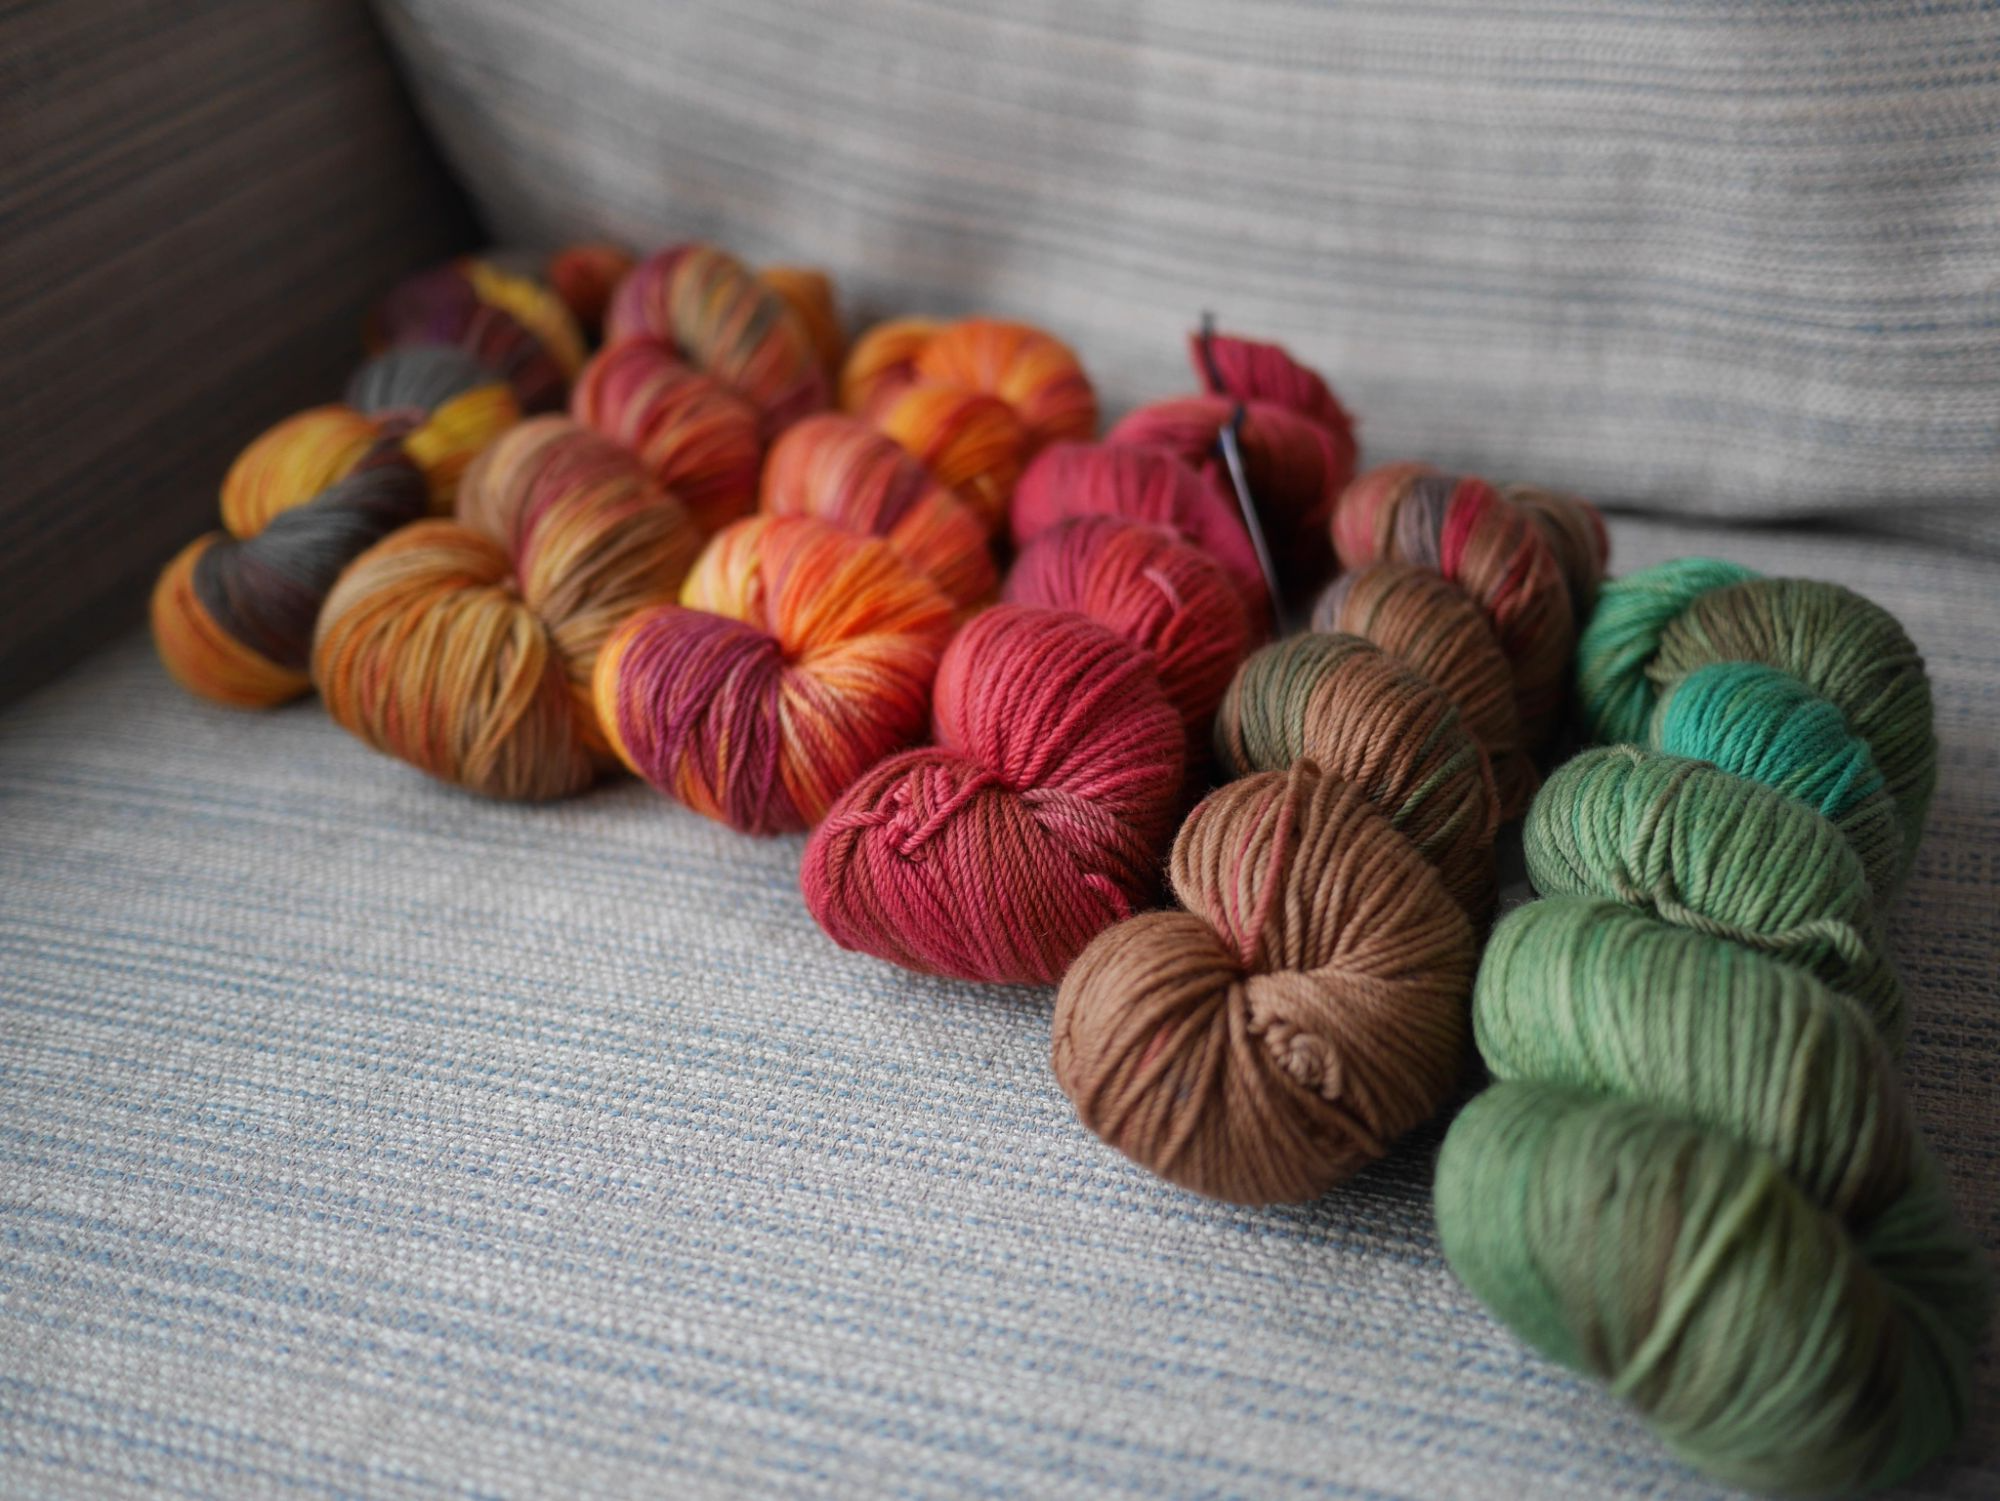 6 skeins on a grey blue striped background , at an angle colourways from right to left are the Earth and Fire Months in order